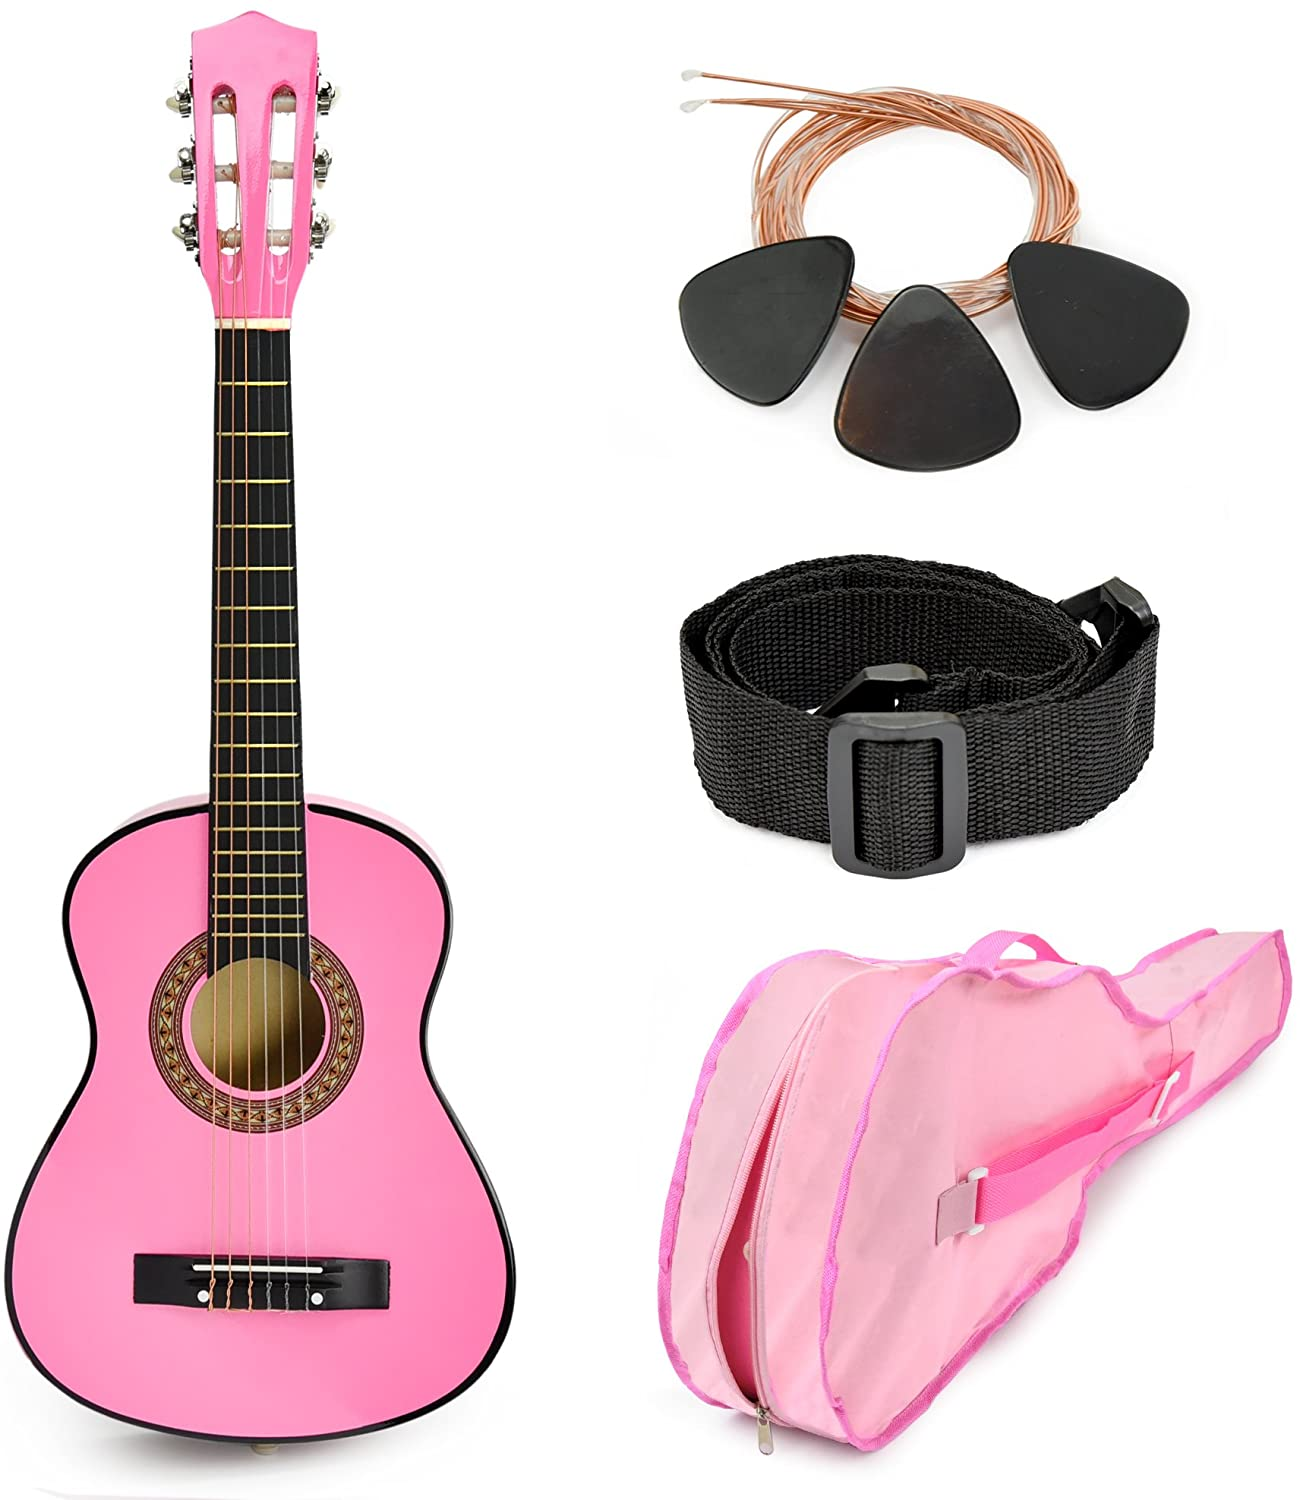 "Pink Wood Guitar with Case and Accessories Gift for Kids/Girls/Beginners (30"")"